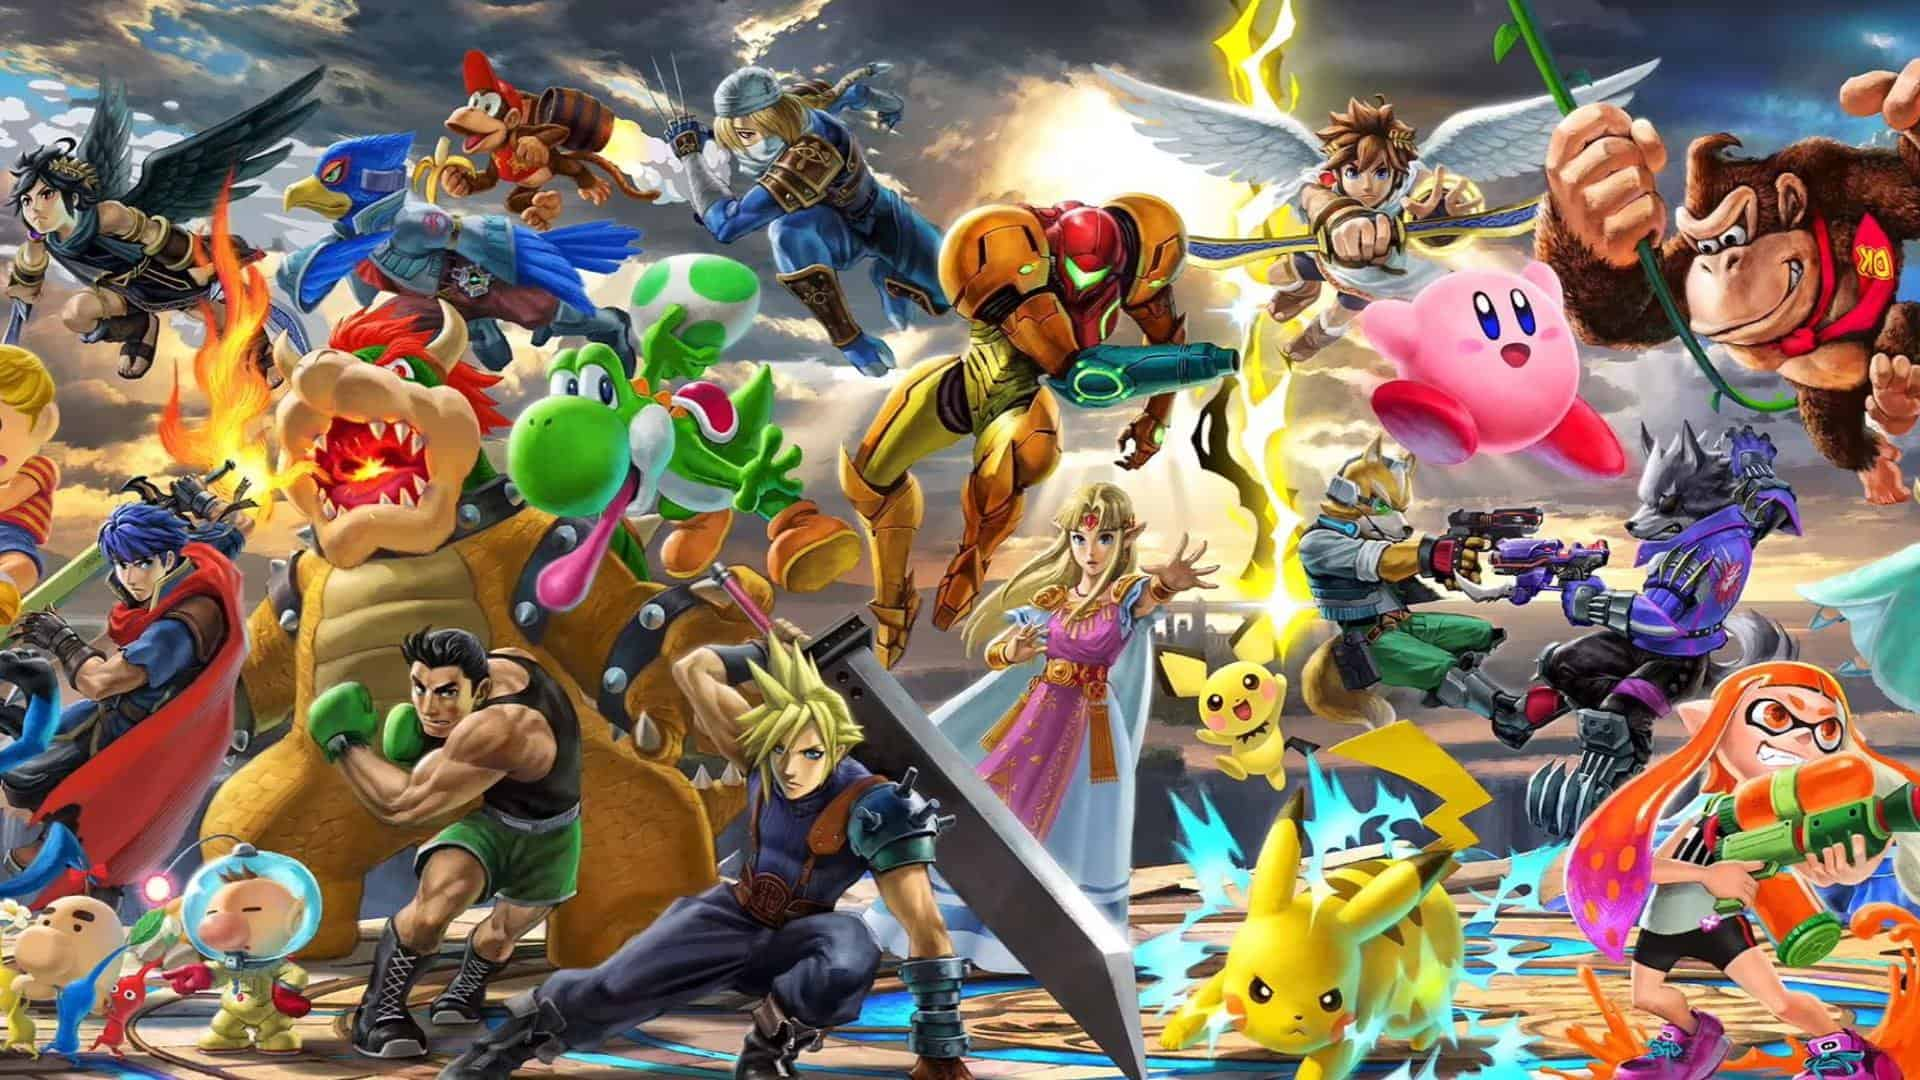 Immagine_2_Editoriale_Smash